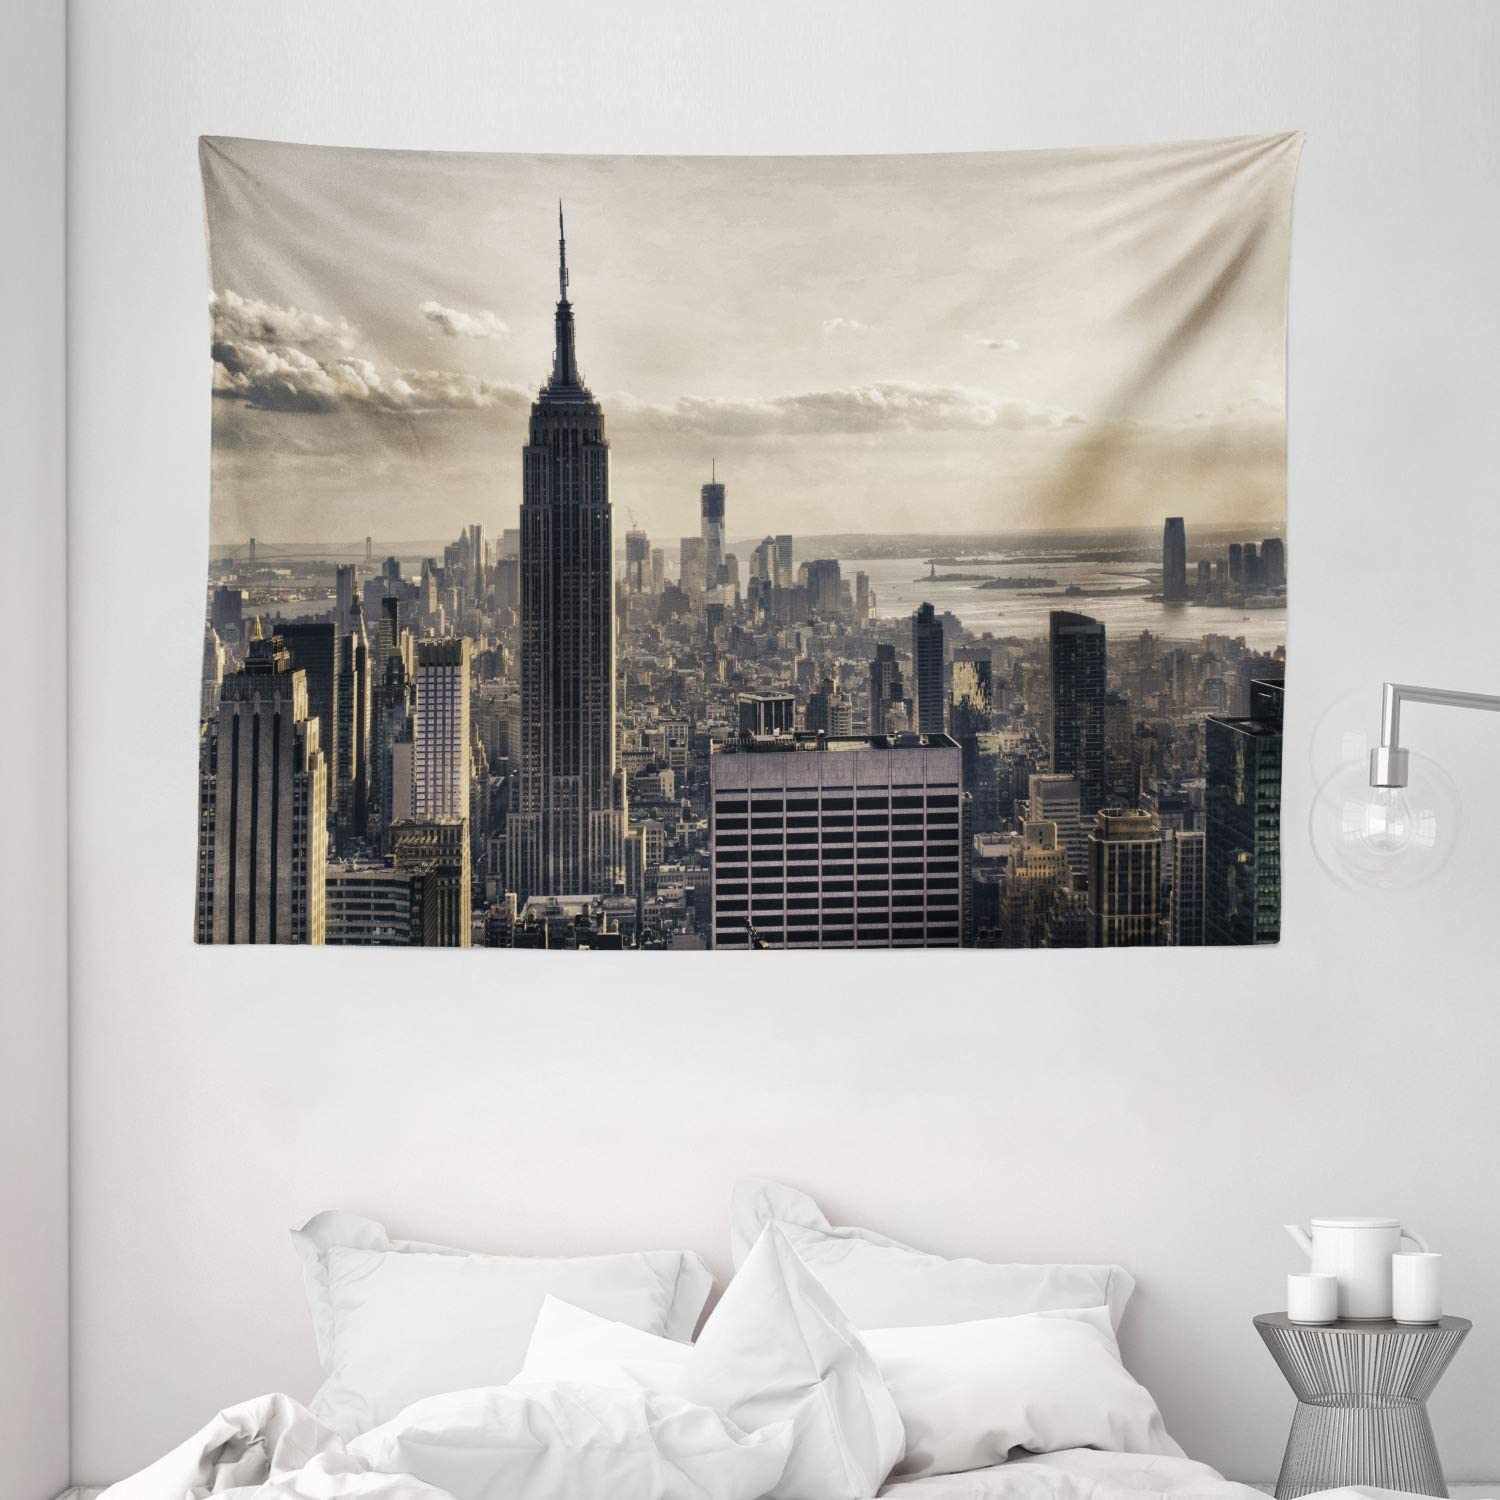 Ambesonne NYC Decor Collection, Aerial View of NYC in Winter Time American Architecture Historical Popular Metropolis Photo, Bedroom Living Room Dorm Wall Hanging Tapestry, 80 X 60 Inches, Beige Grey